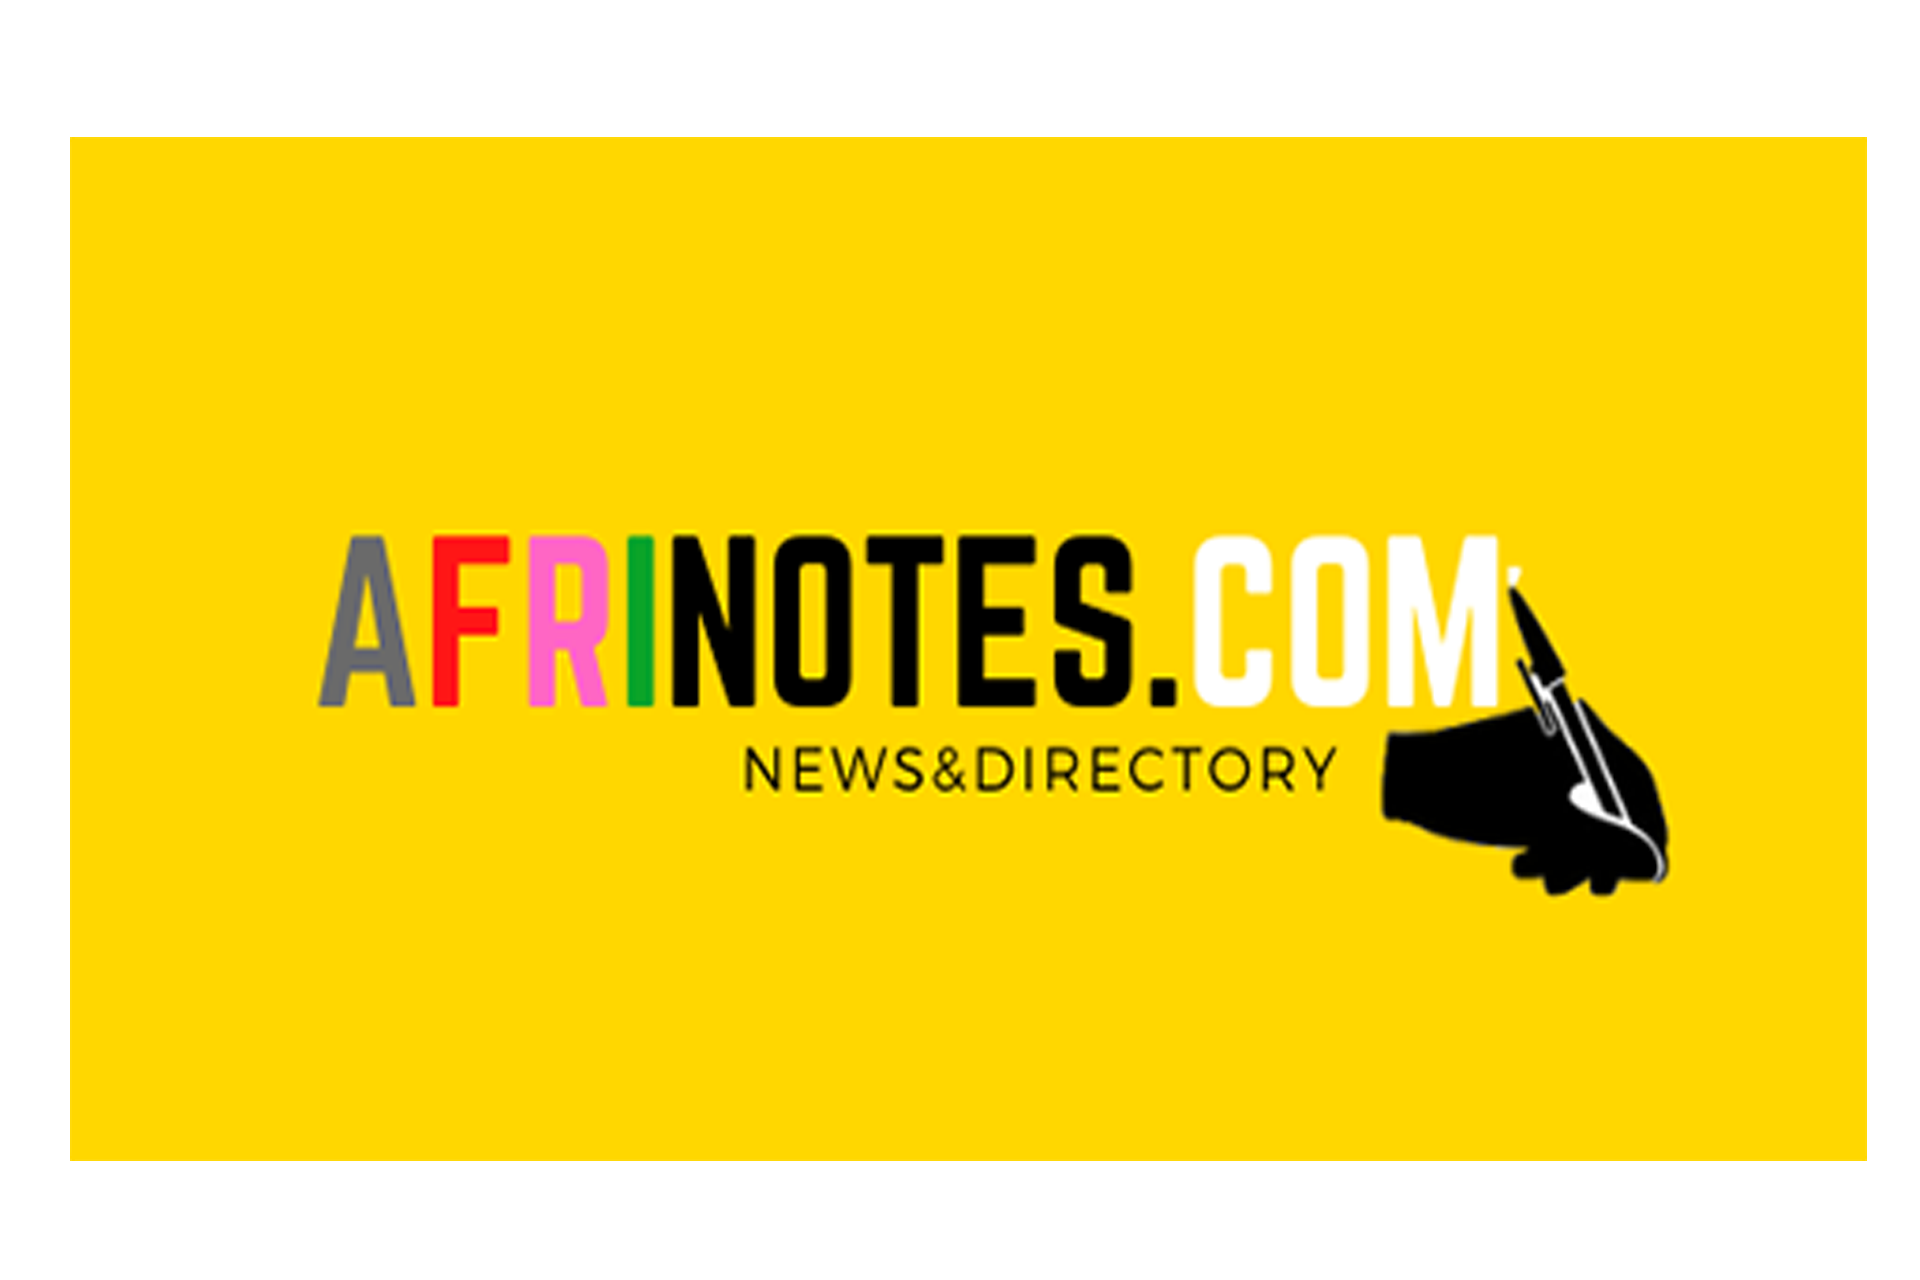 Grow Your Business With AfriNOTES News, Directory, and Classified Portal For Africans